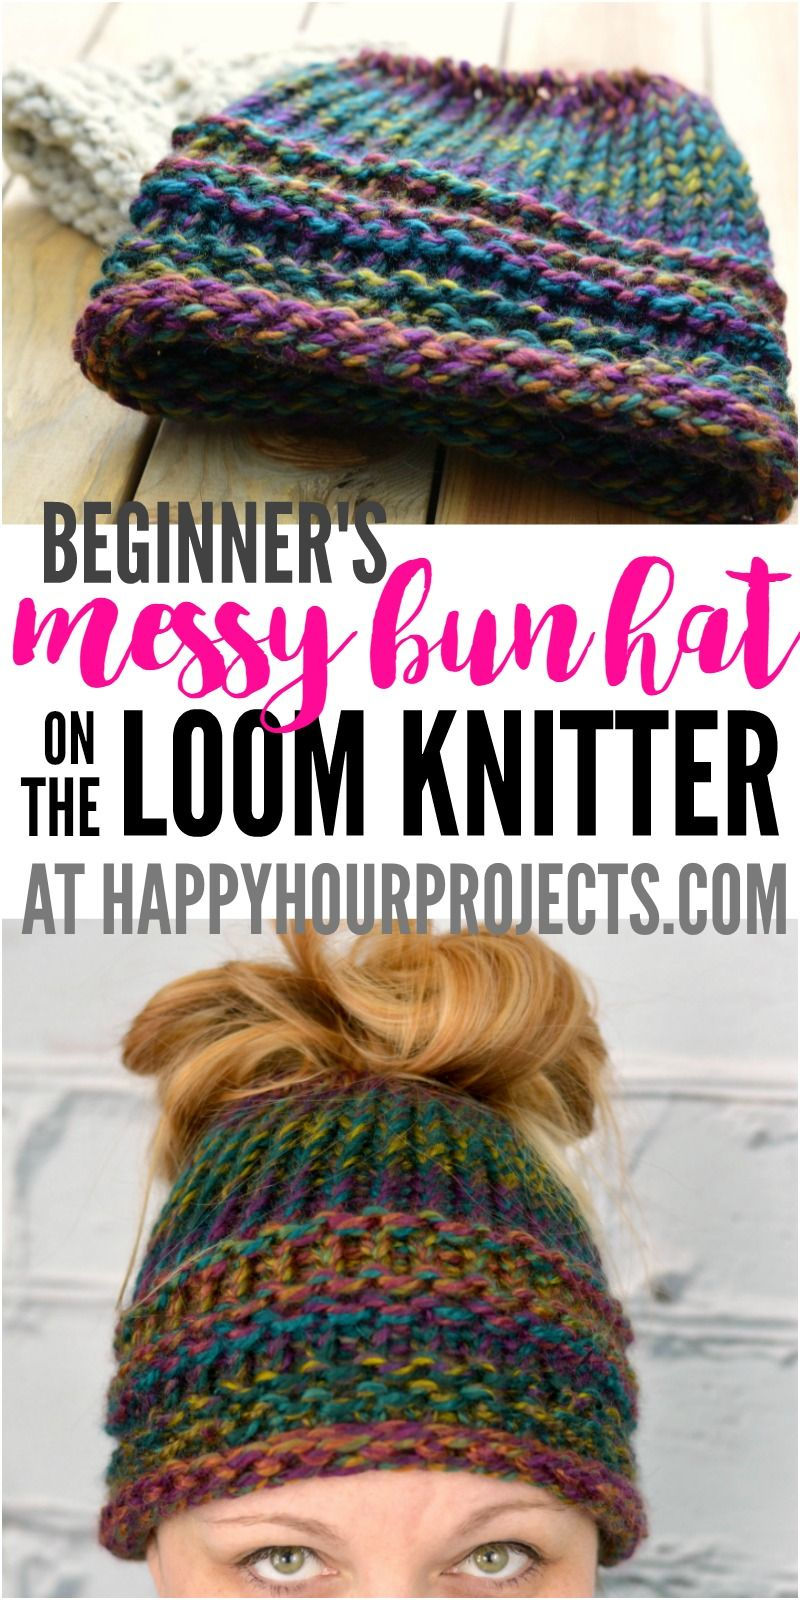 Beginners Messy Bun Hat Using the Loom Knitter at happyhourprojects ...